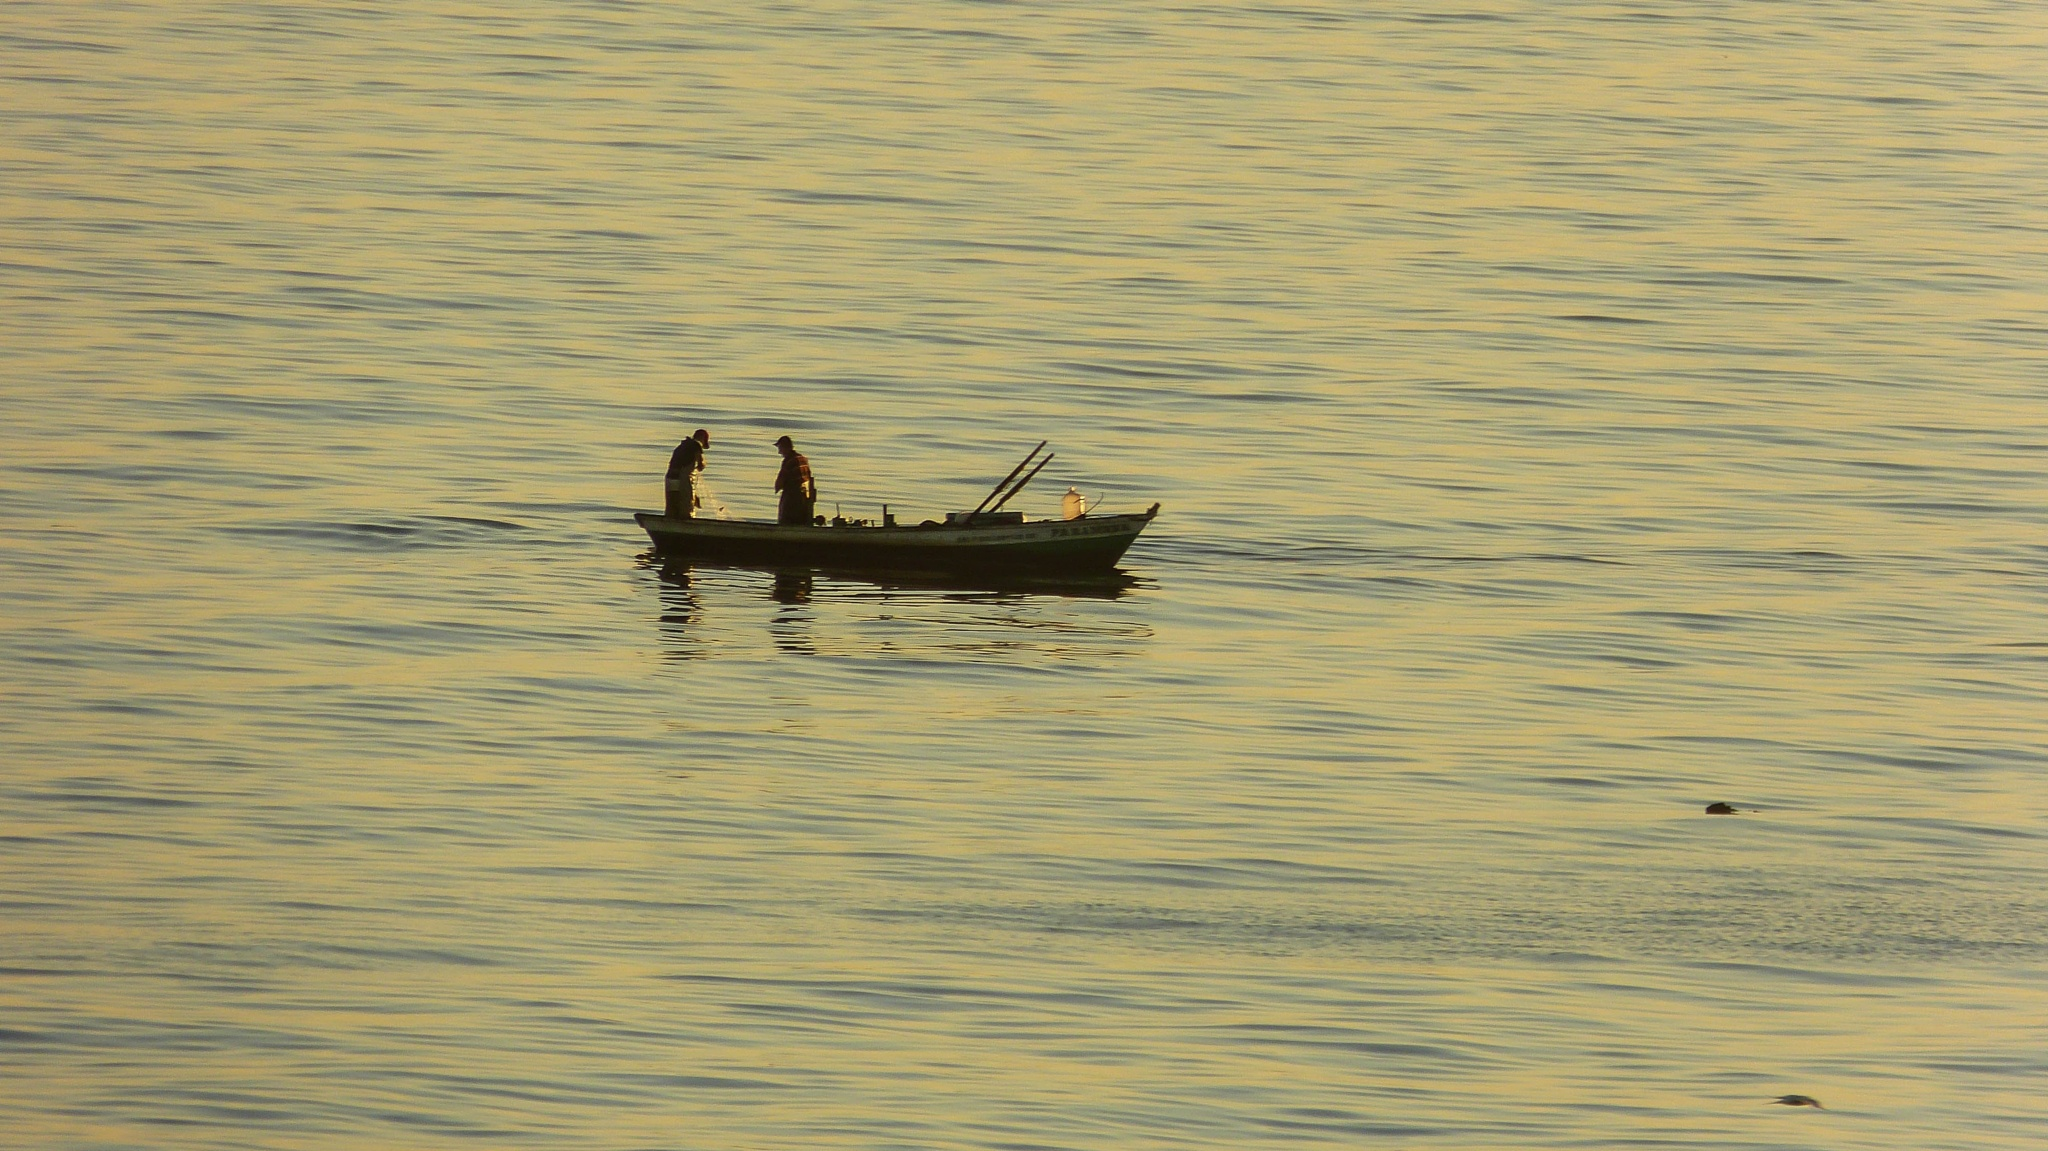 Time to fish by Glauco Rezende